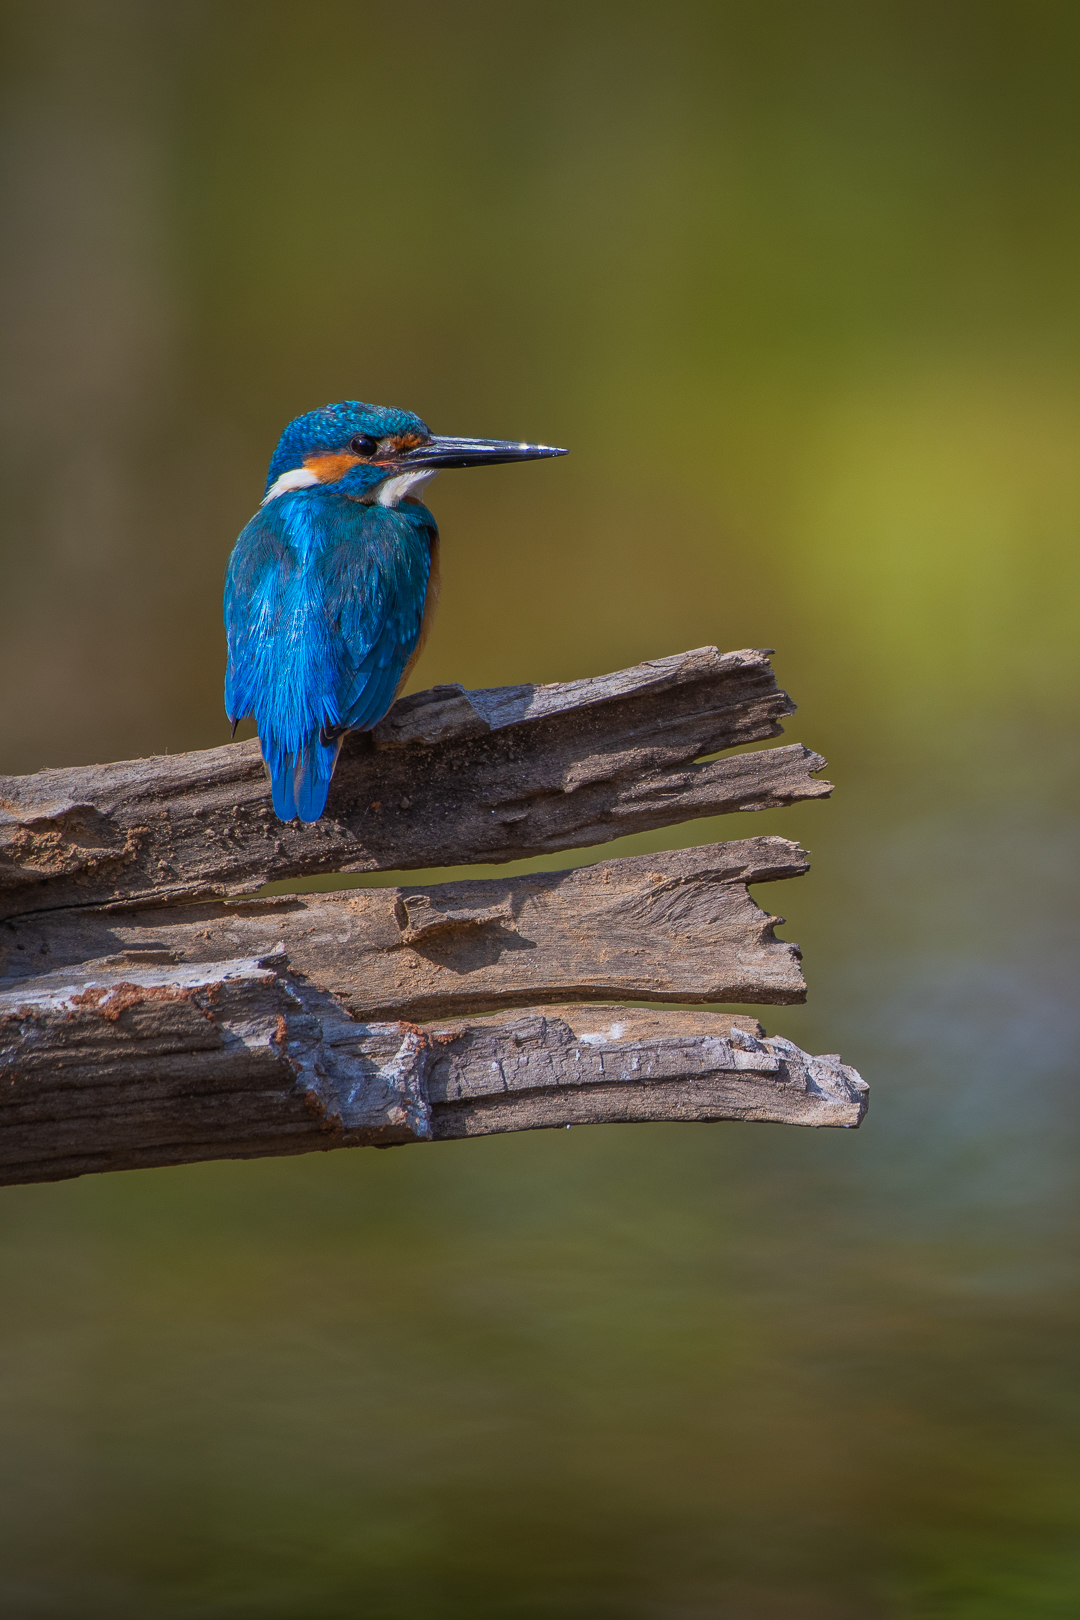 When viewed from a safe distance, common kingfishers are remarkably cooperative photographic subjects, as is this one spotted in Bandhavgarh. Photo: Aditya Panda